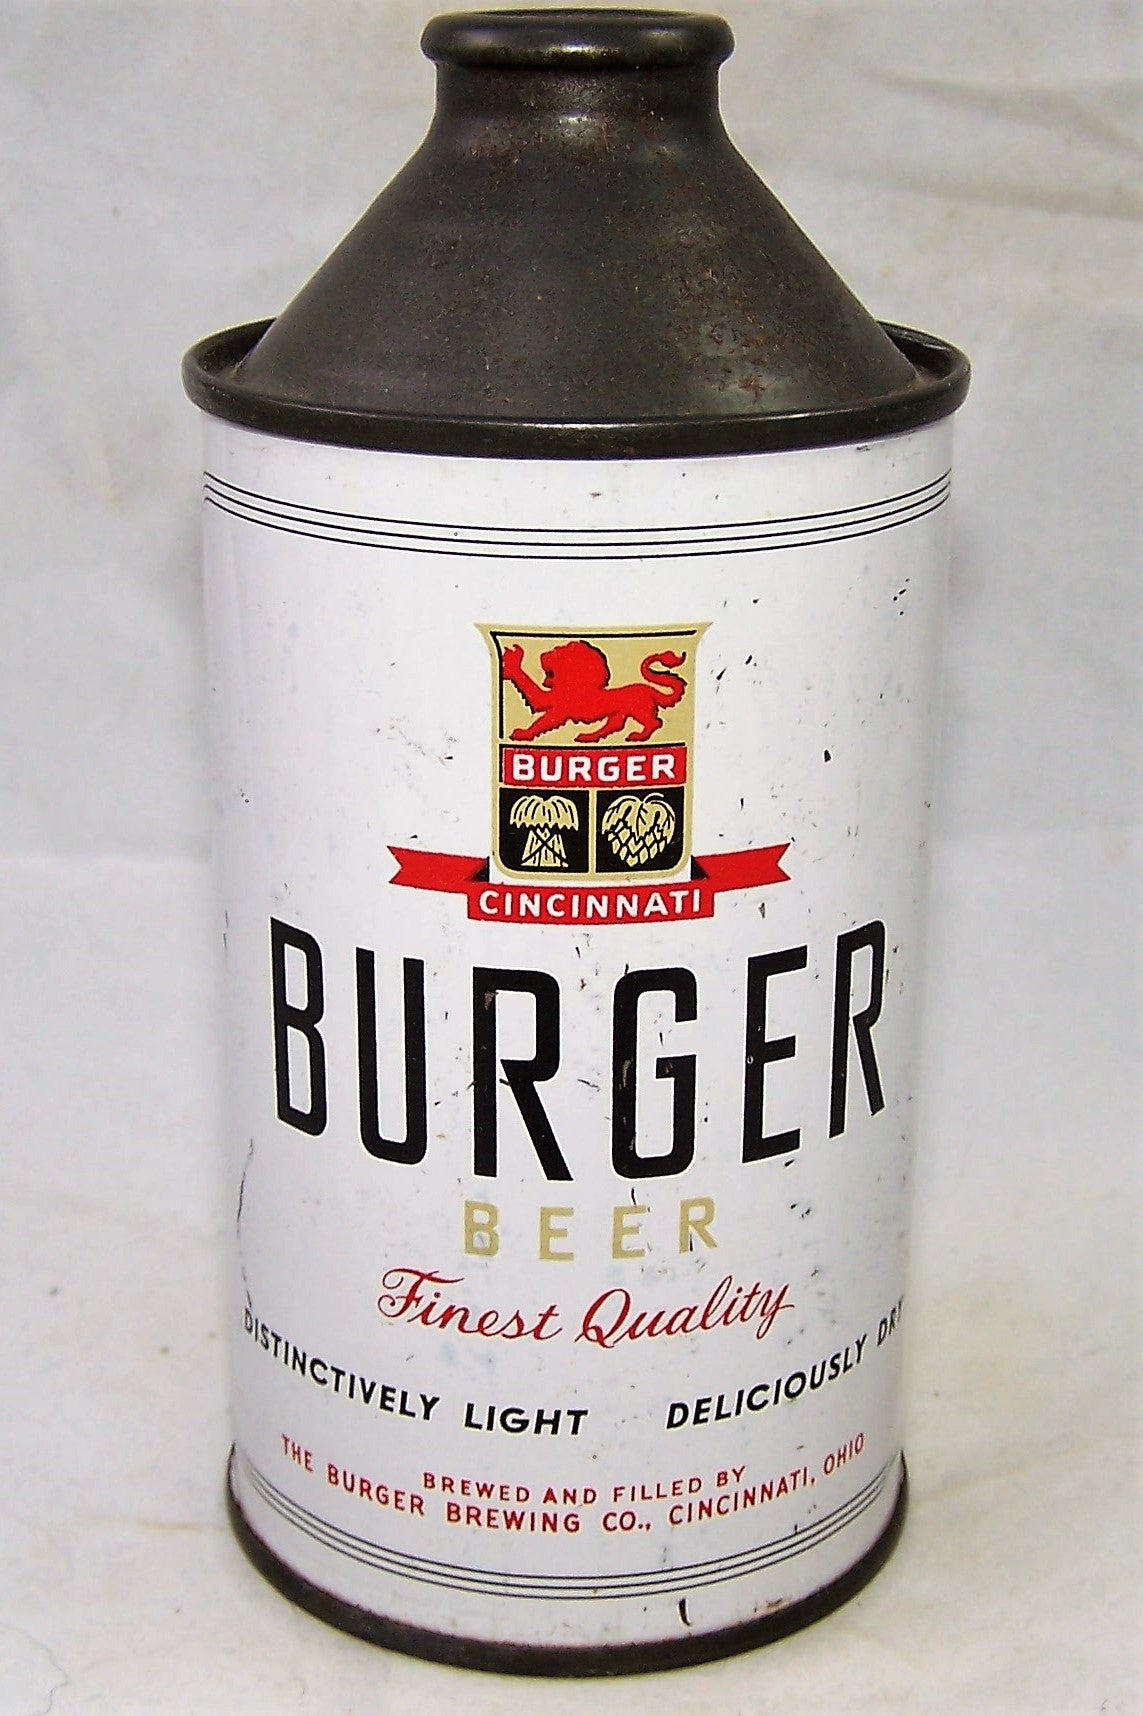 Burger Finest Quality Beer, USBC 155-28, Grade 1- Sold on 06/10/19